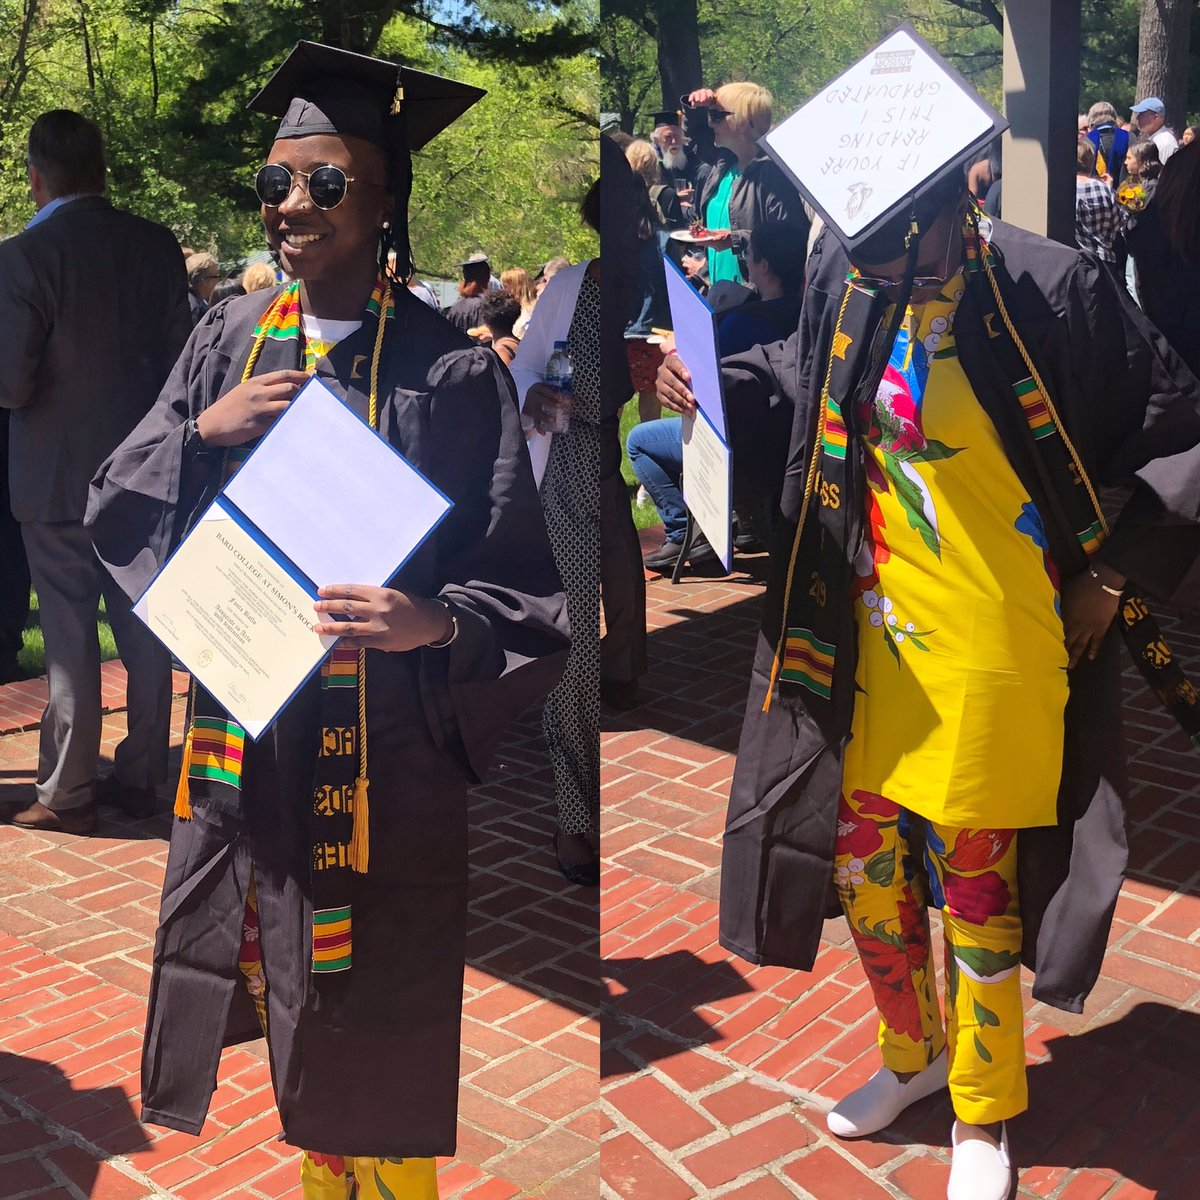 Dropped out of Highschool at 15 ✅  Started college at 15 ✅  Graduated with my associates degree at 17 ✅ First Generation Grad ✅ I didn't take the conventional way but I'm different ‼️ #collegegrad #blackgirlsgraduate #blackwomeninstem #blackgirlmagic